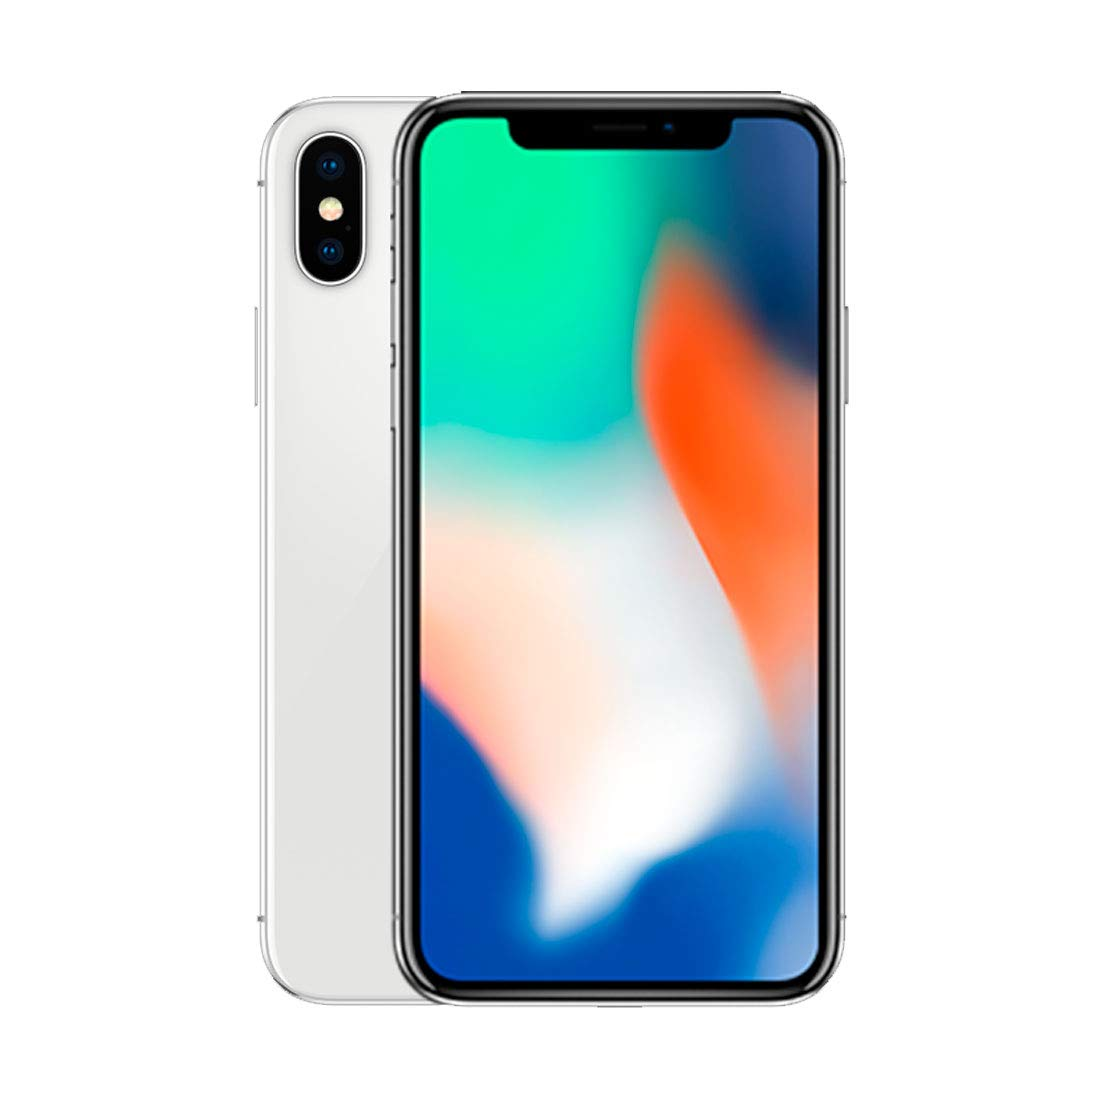 Apple Iphone X 256gb Silver For Att T Mobile Renewed